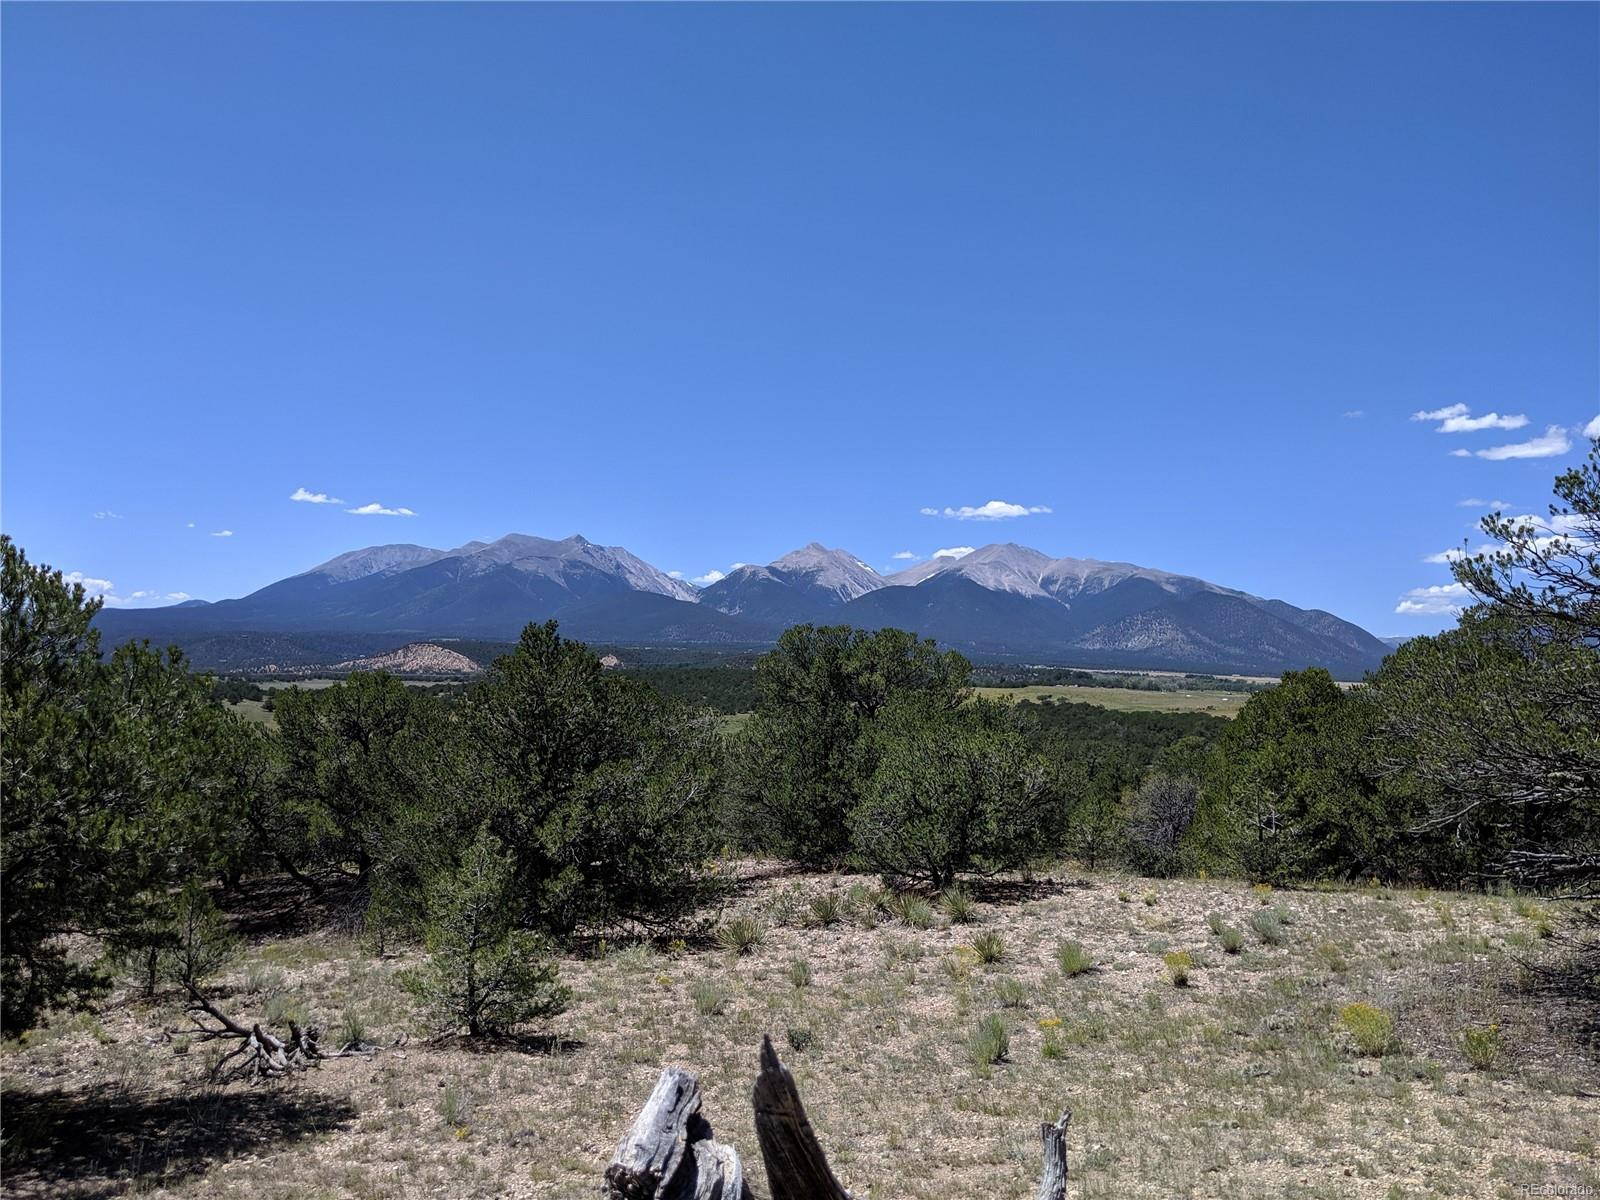 Lot 46, Nathrop, CO 81236 - Nathrop, CO real estate listing